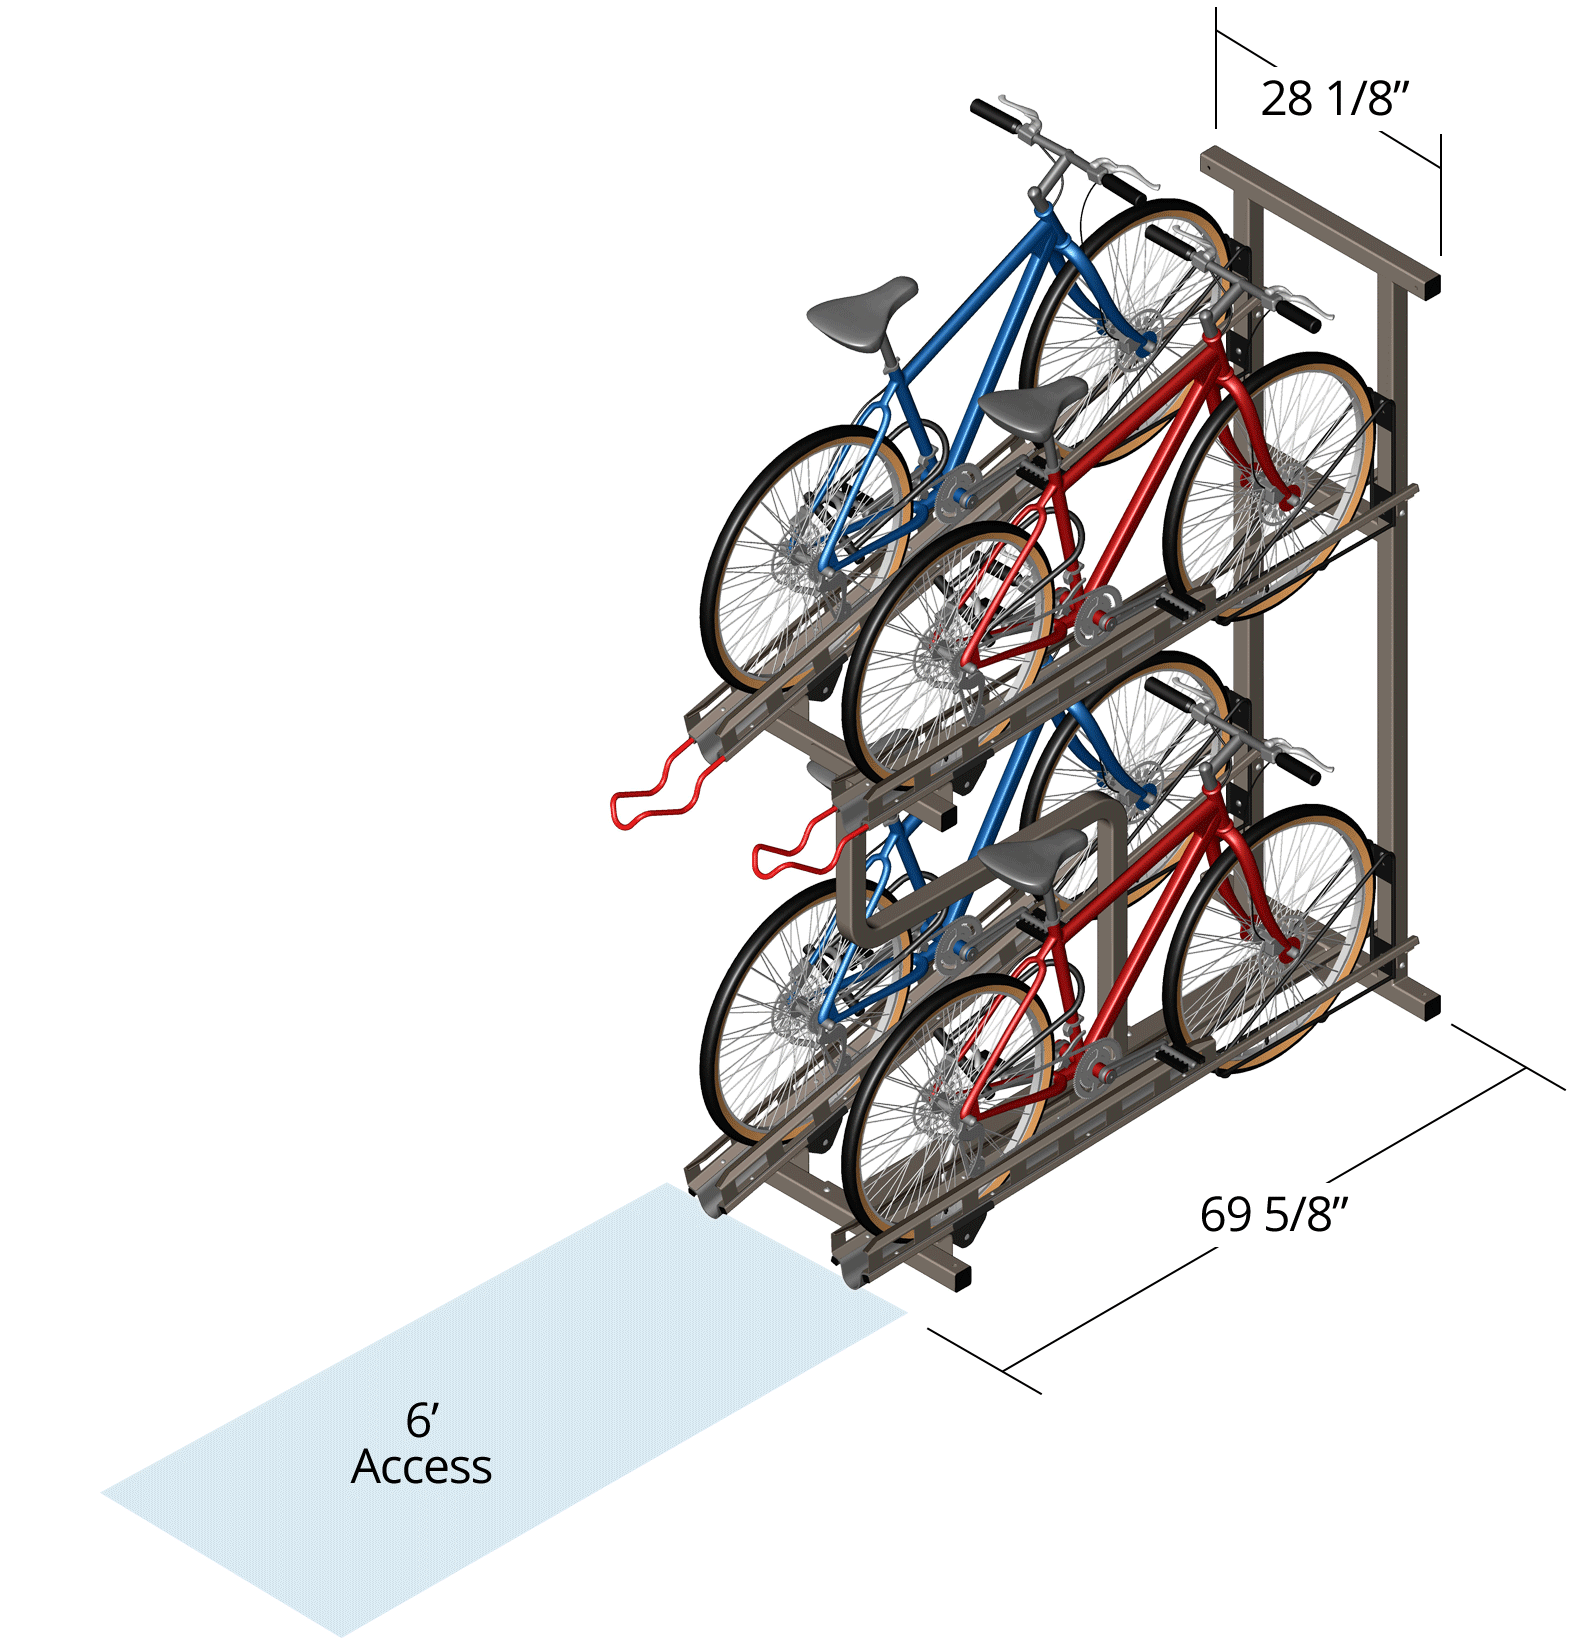 High-Density Bike Rack Dimensions